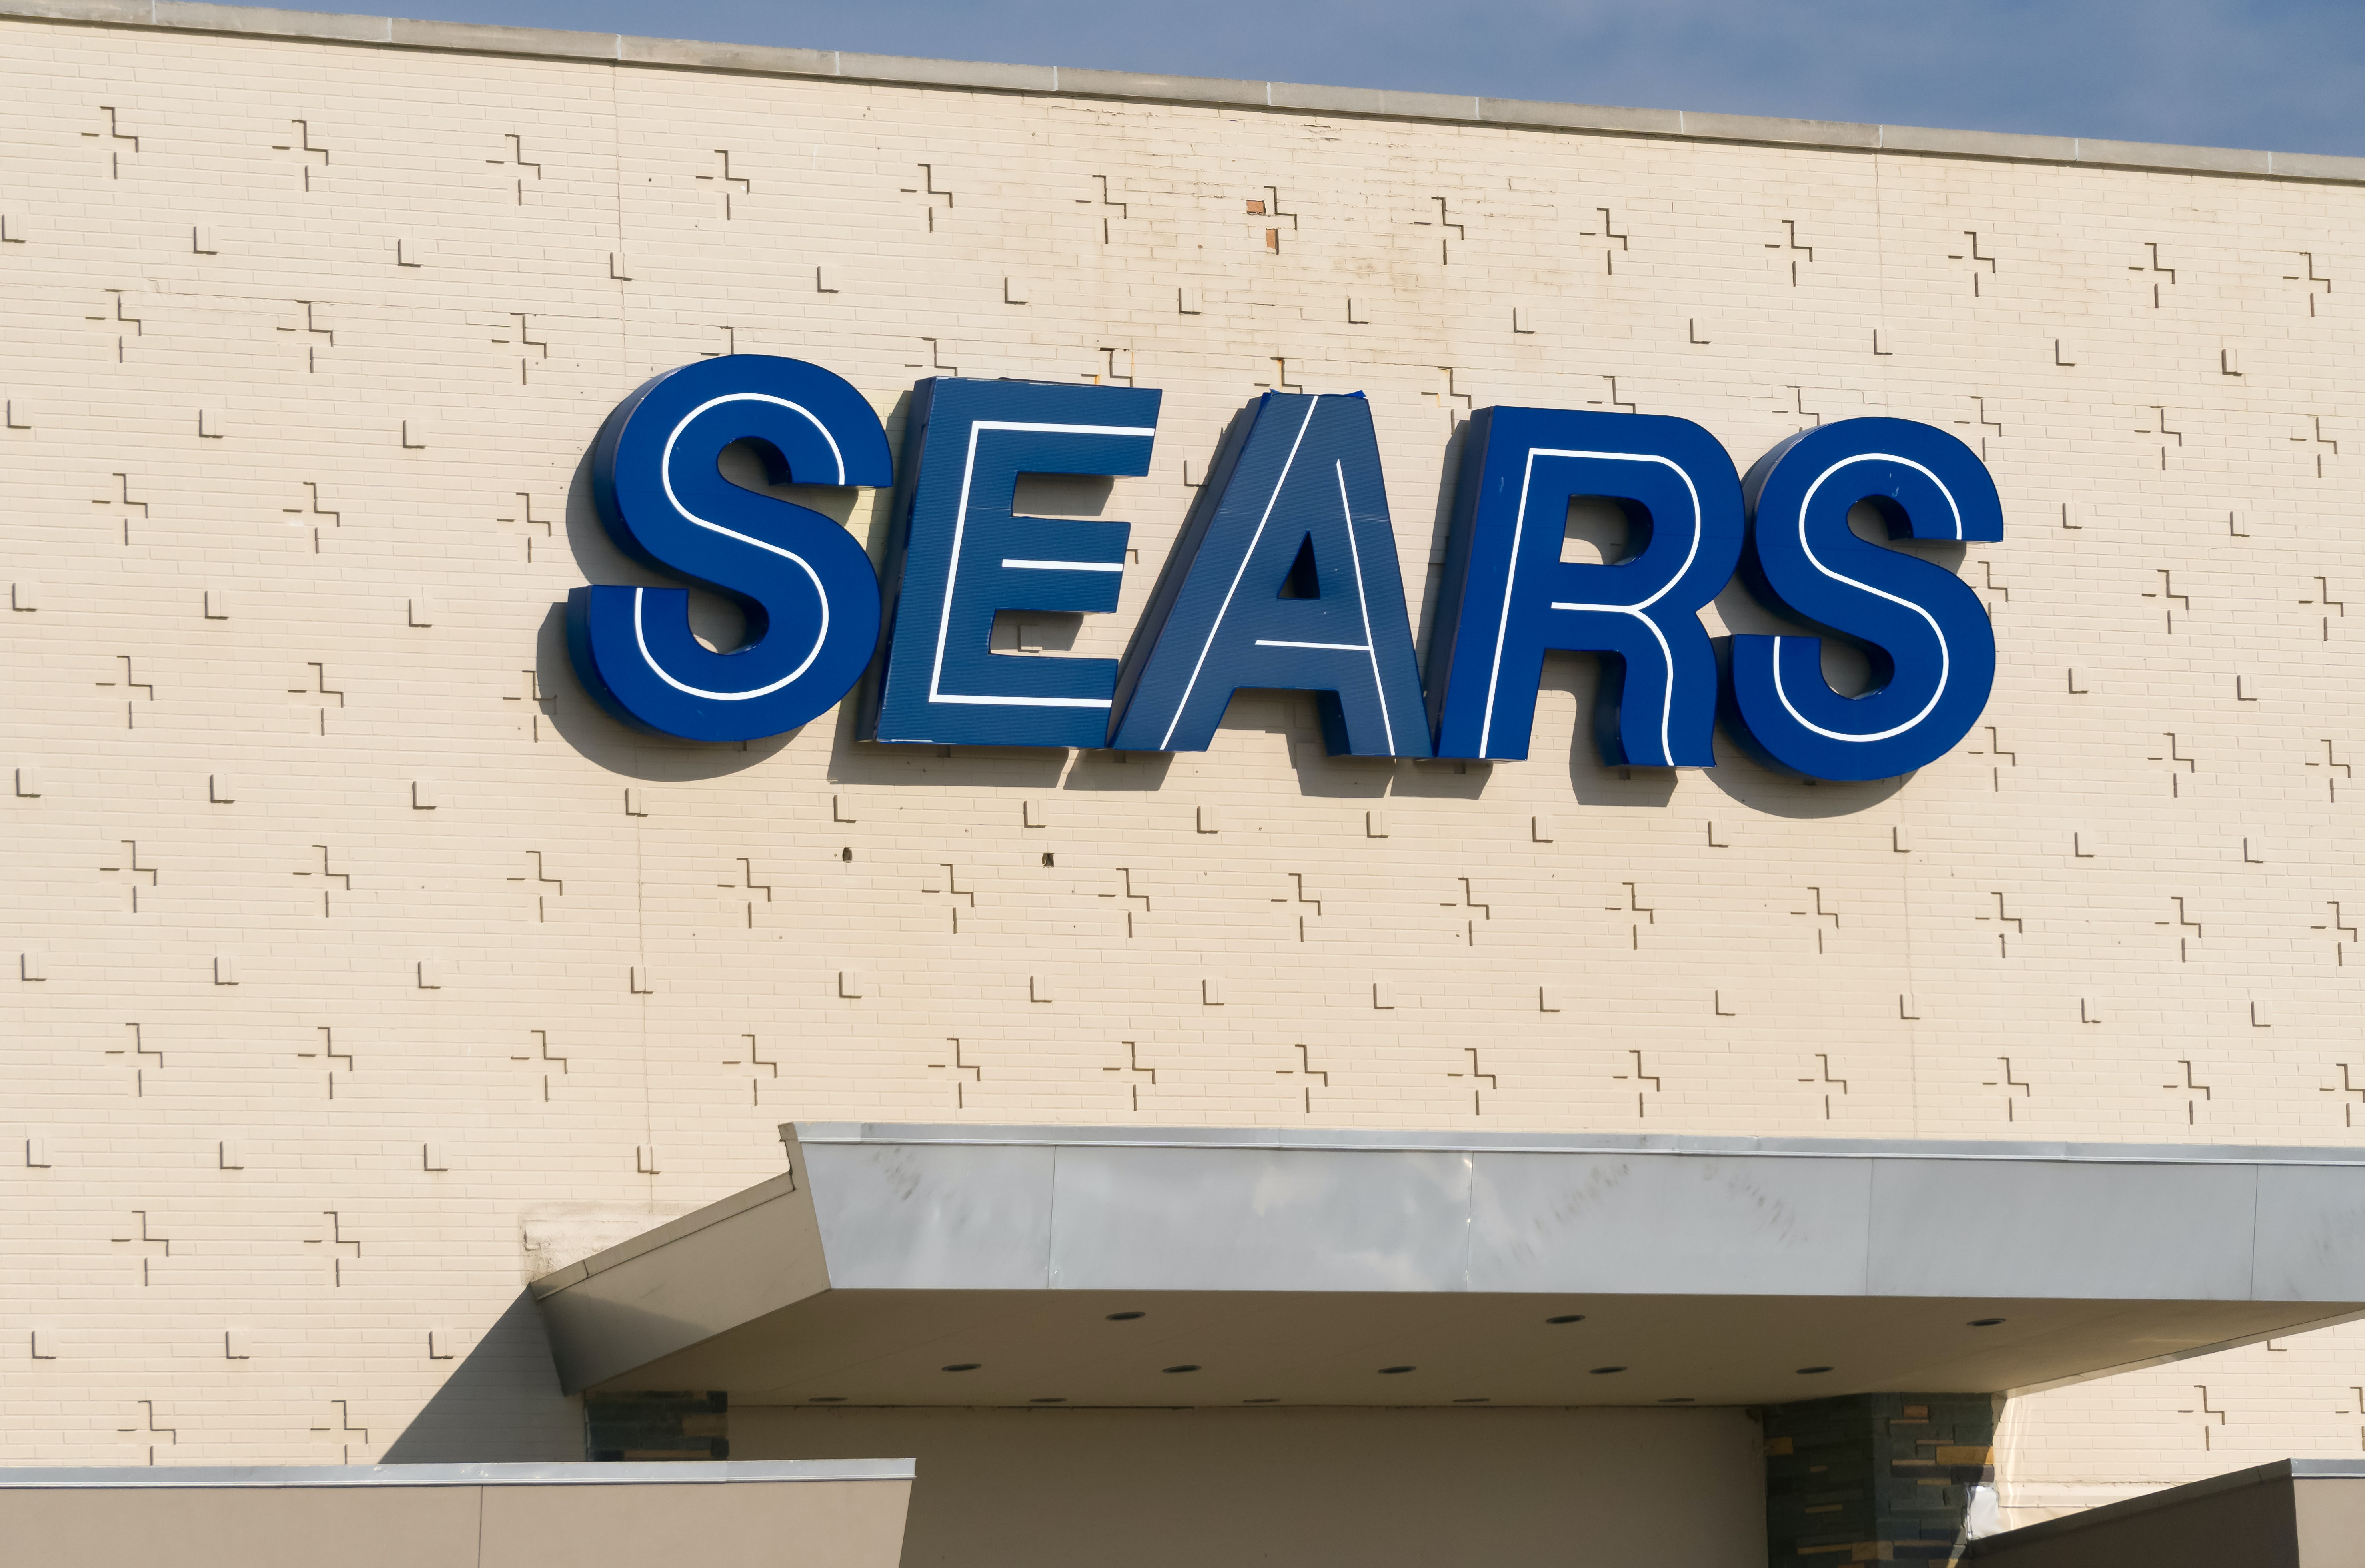 A Sears store | Source: Shutterstock